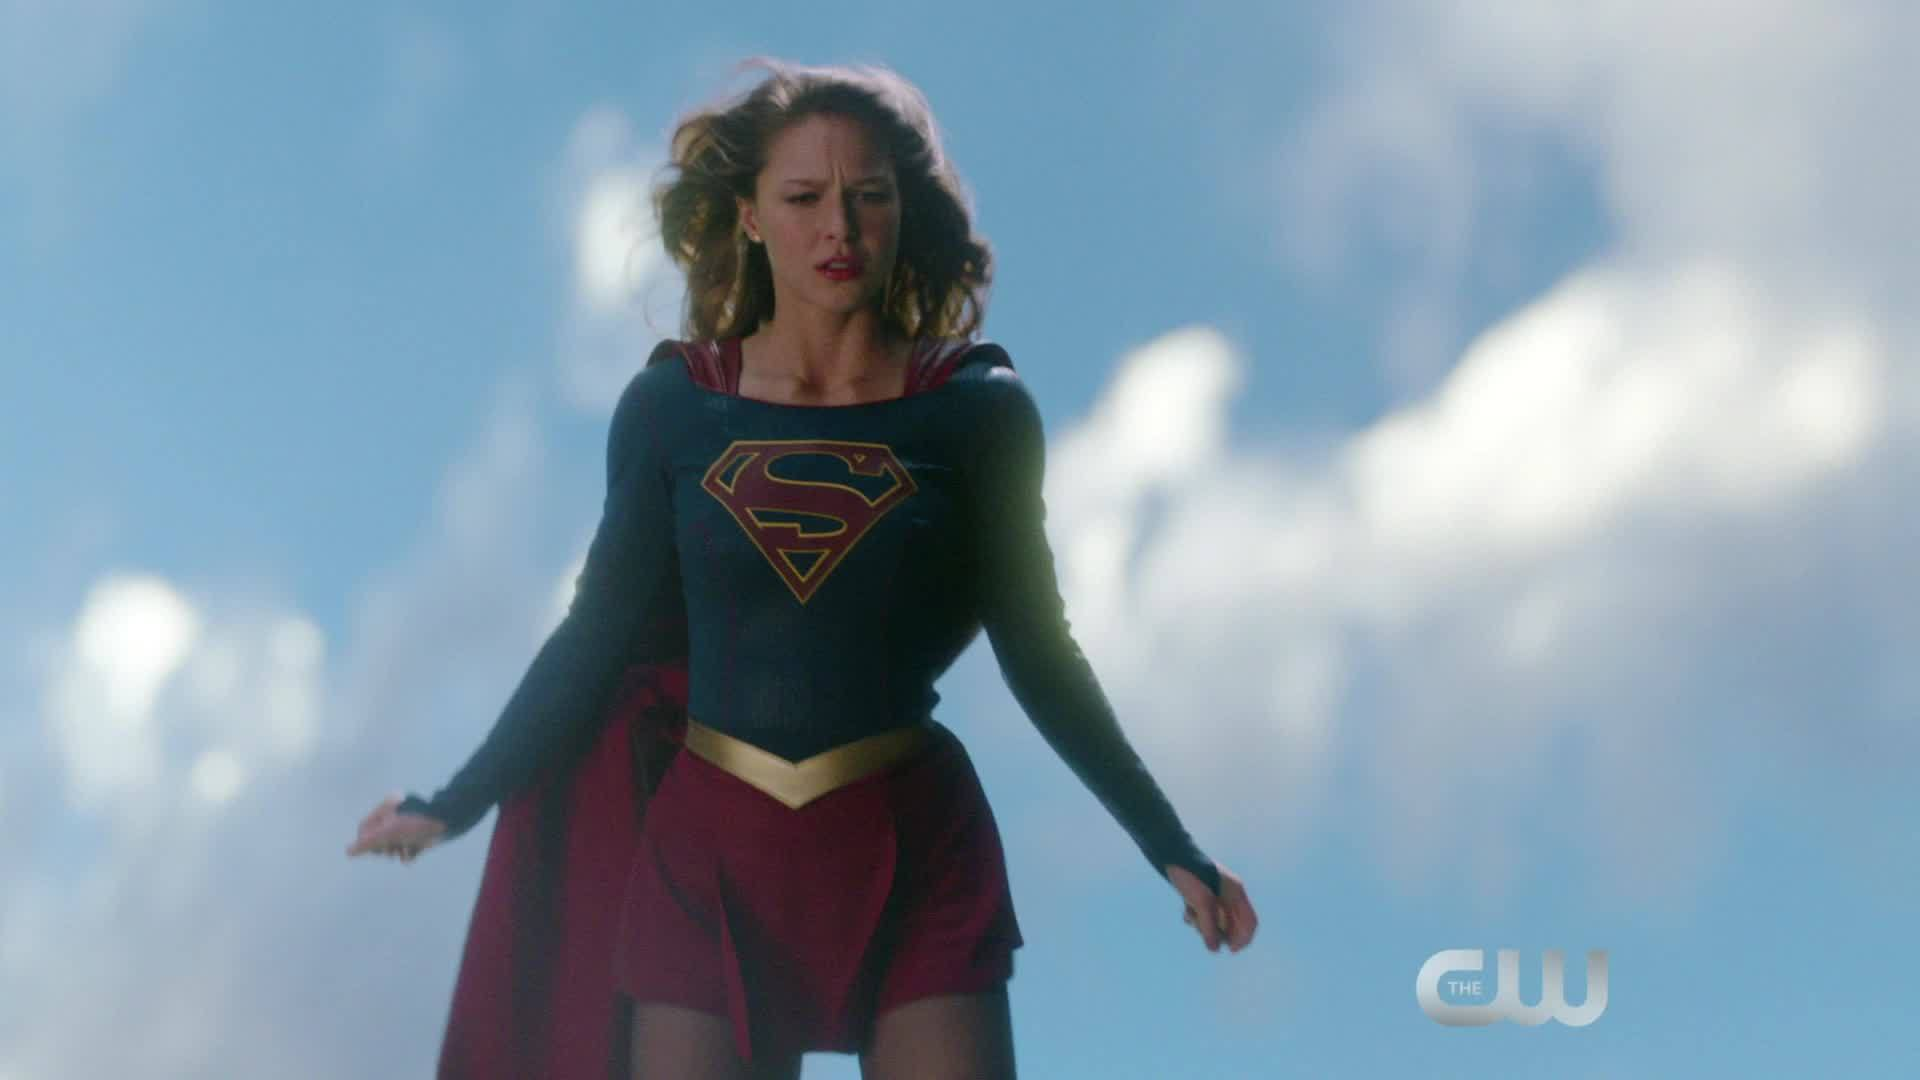 Supergirl will return with new episodes on Sunday, January 20, 2019 at 7PM on The Gulf Coast CW.